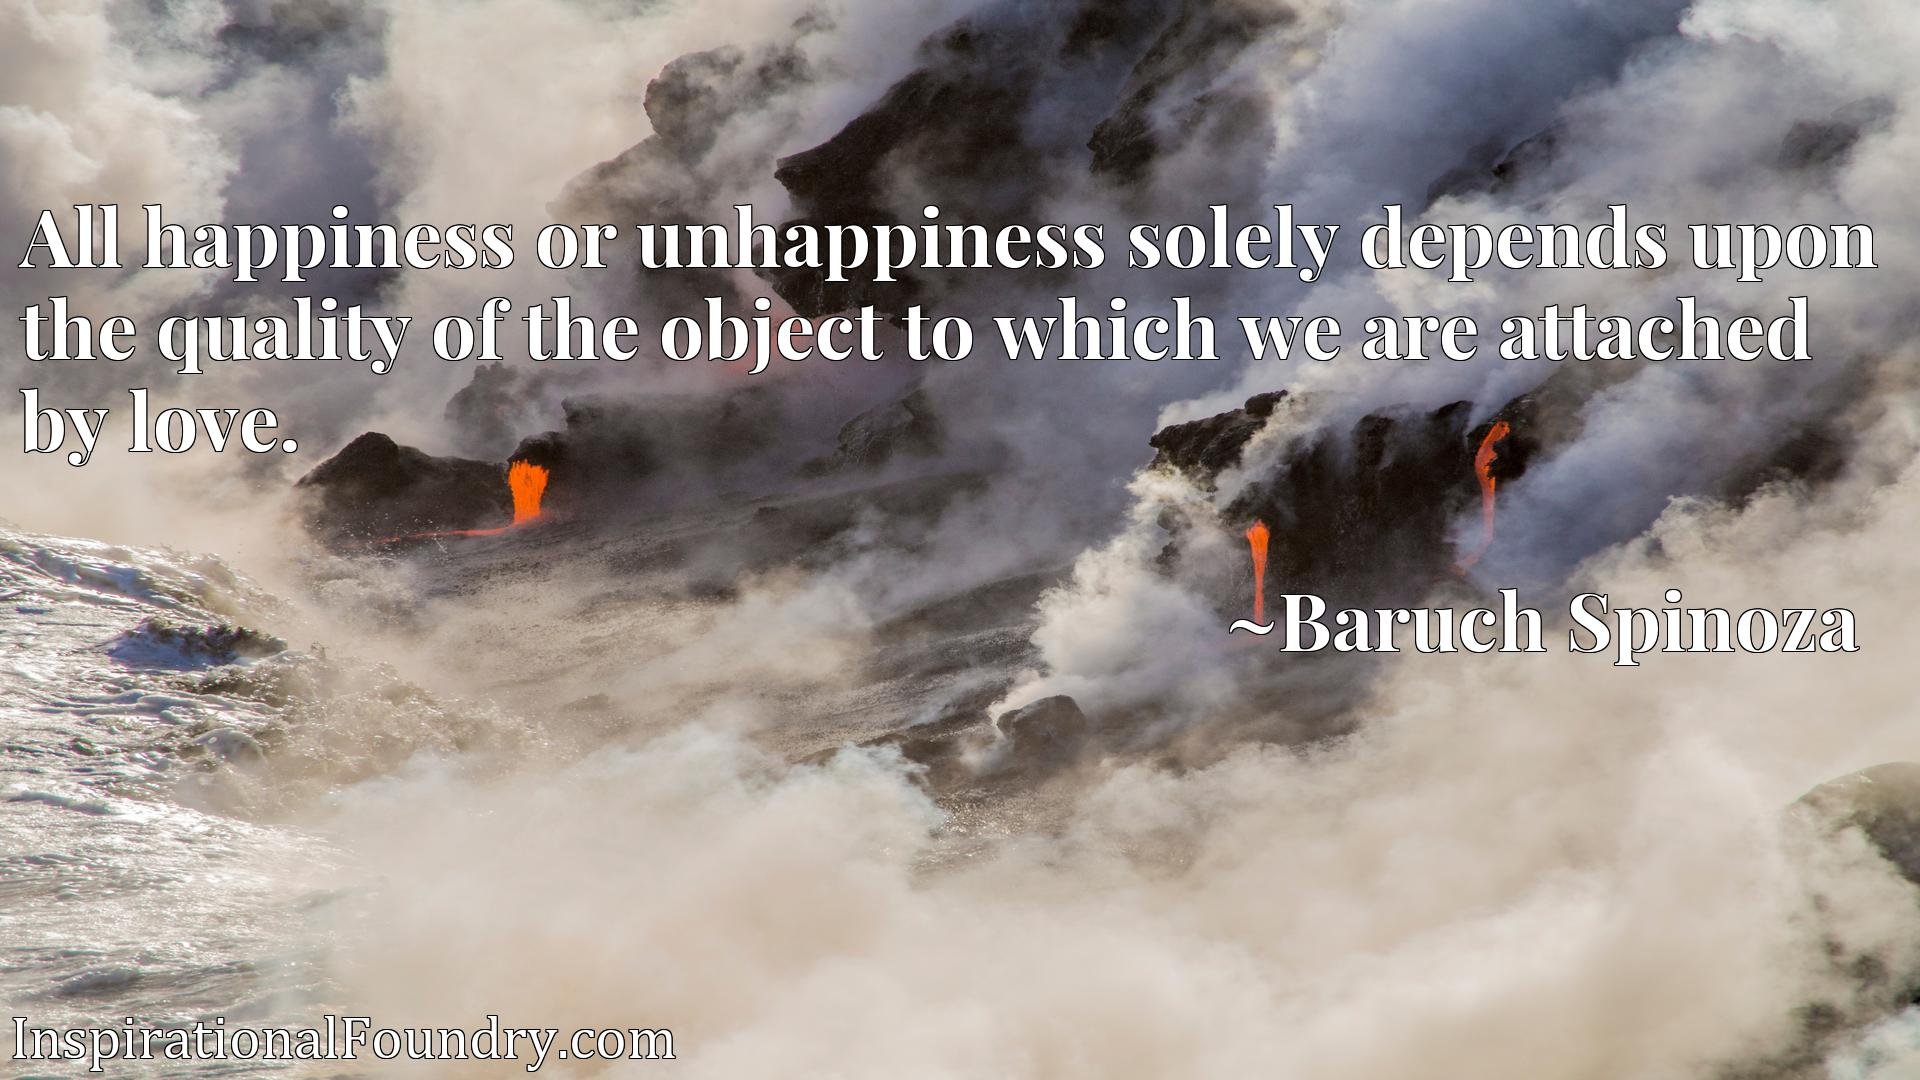 Quote Picture :All happiness or unhappiness solely depends upon the quality of the object to which we are attached by love.